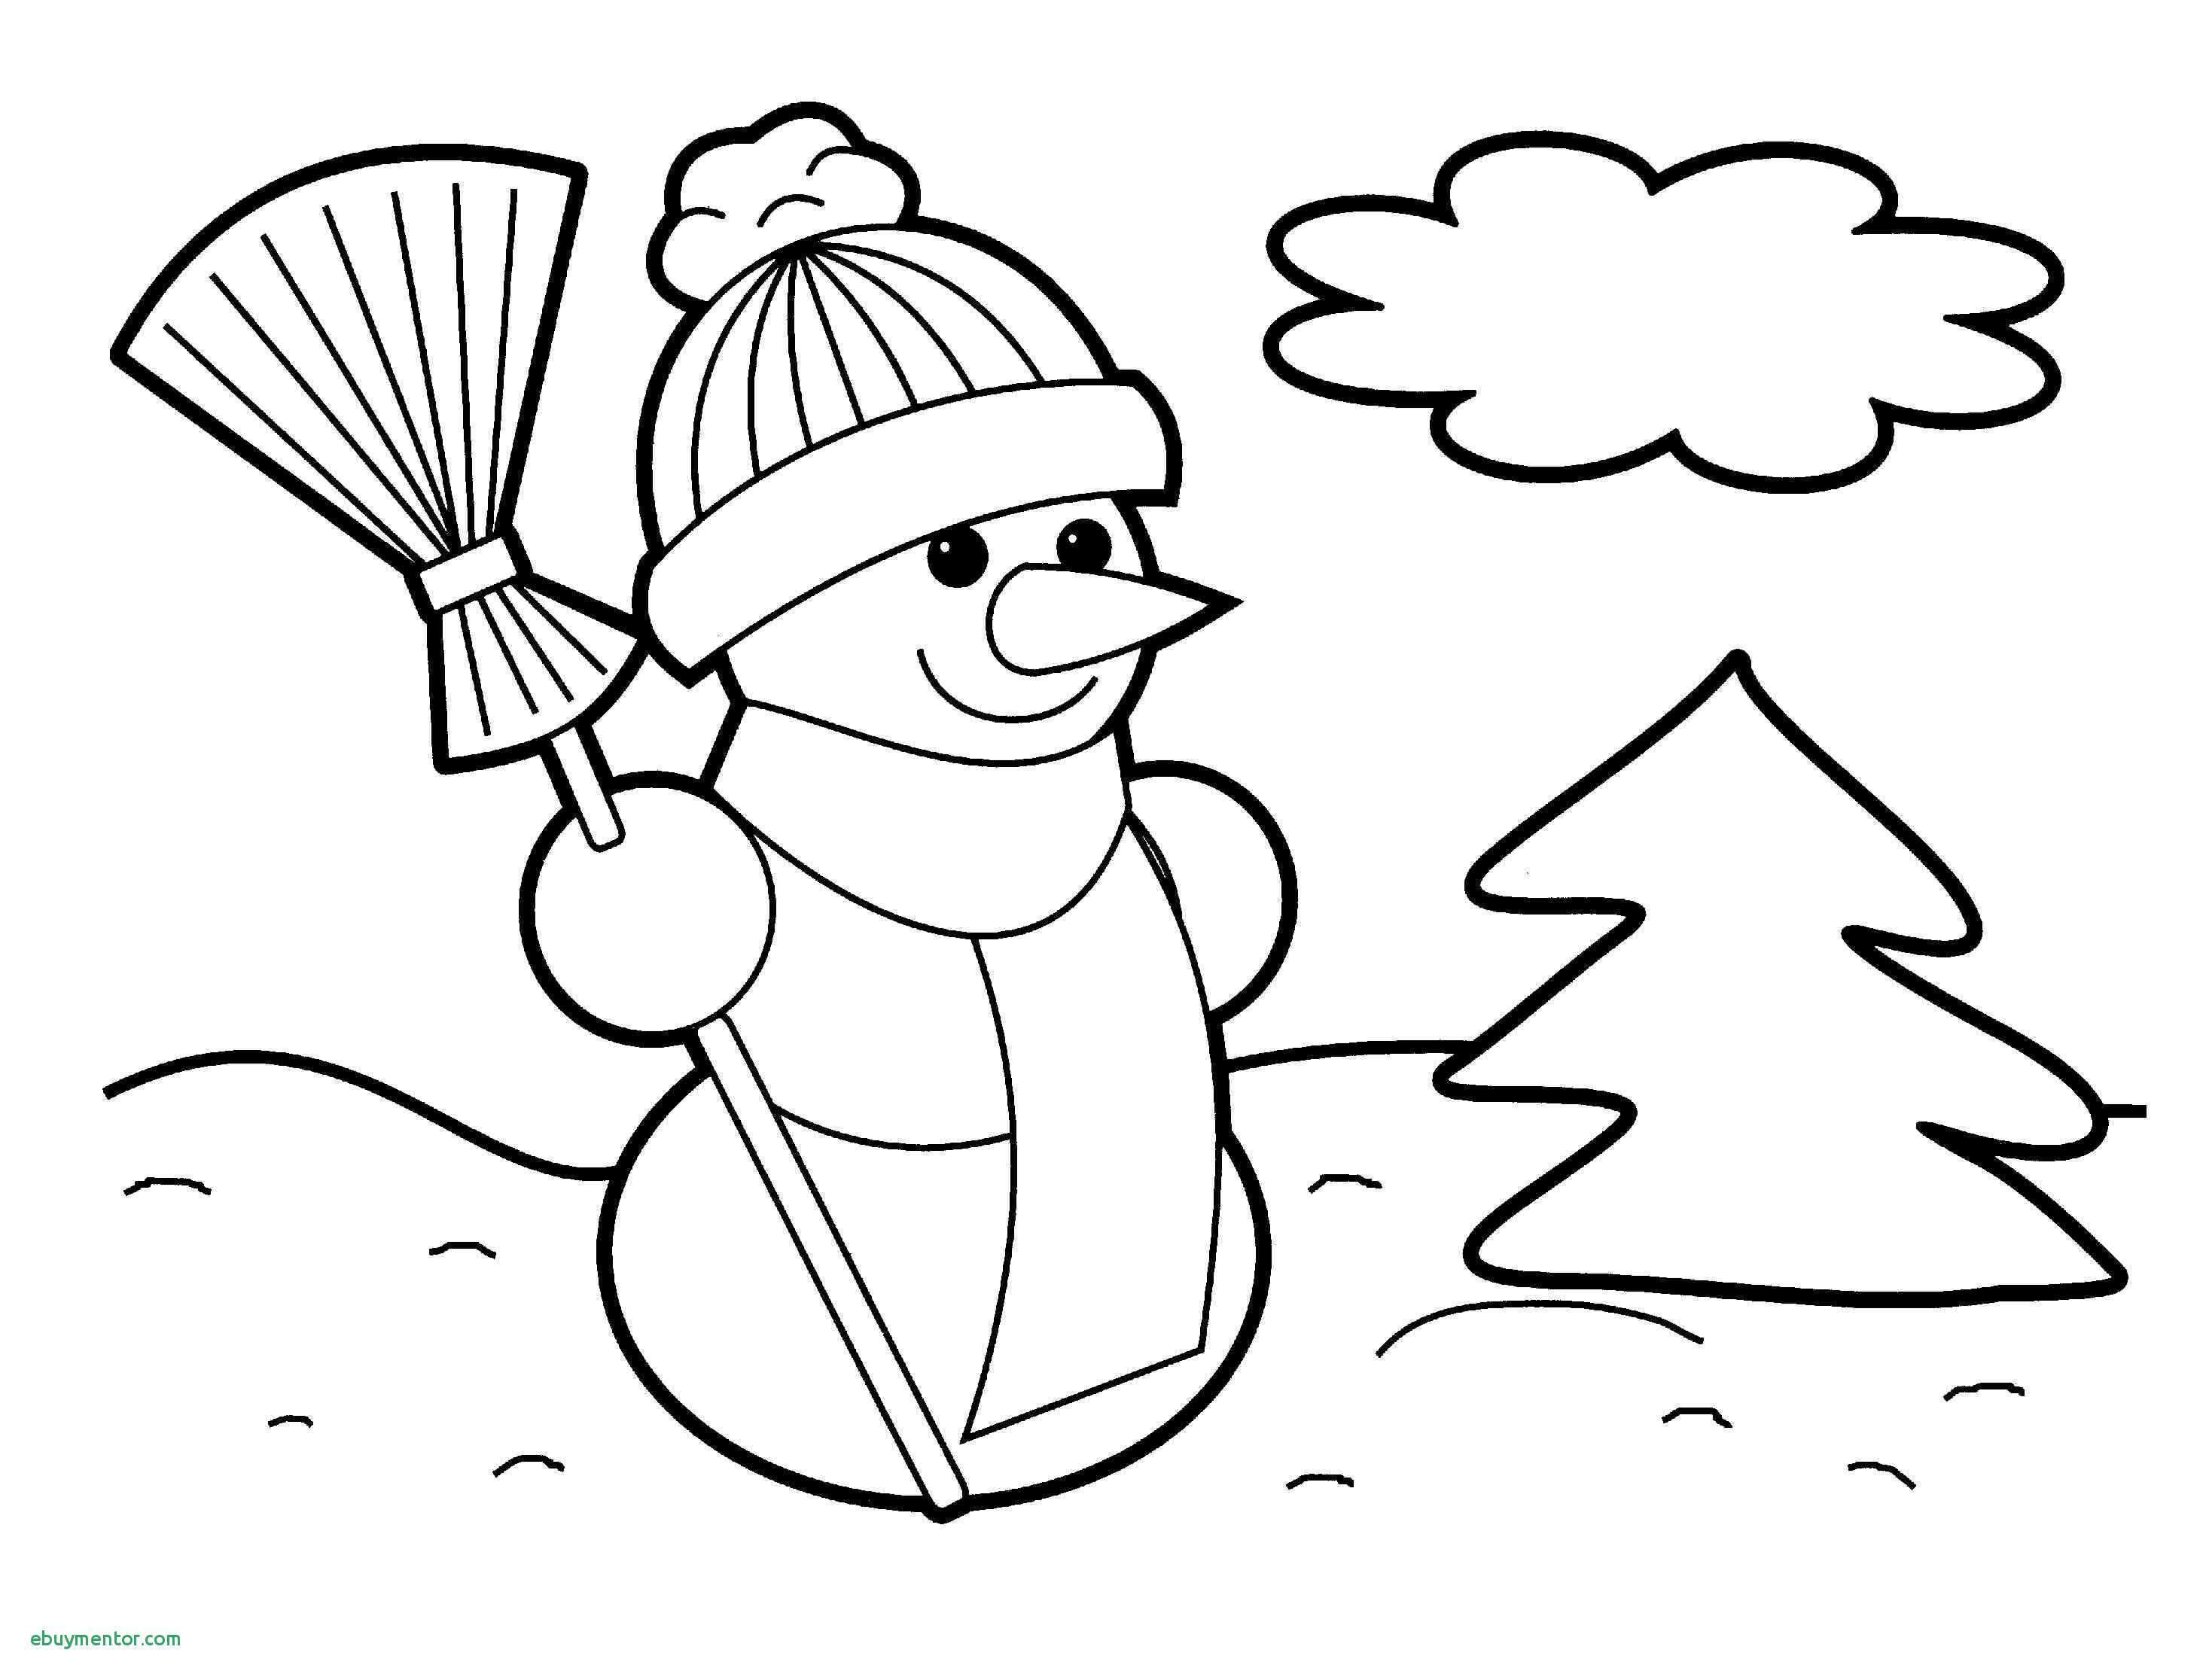 Santa S Helpers Coloring Pages With Face 40 Christmas Tree Xmas